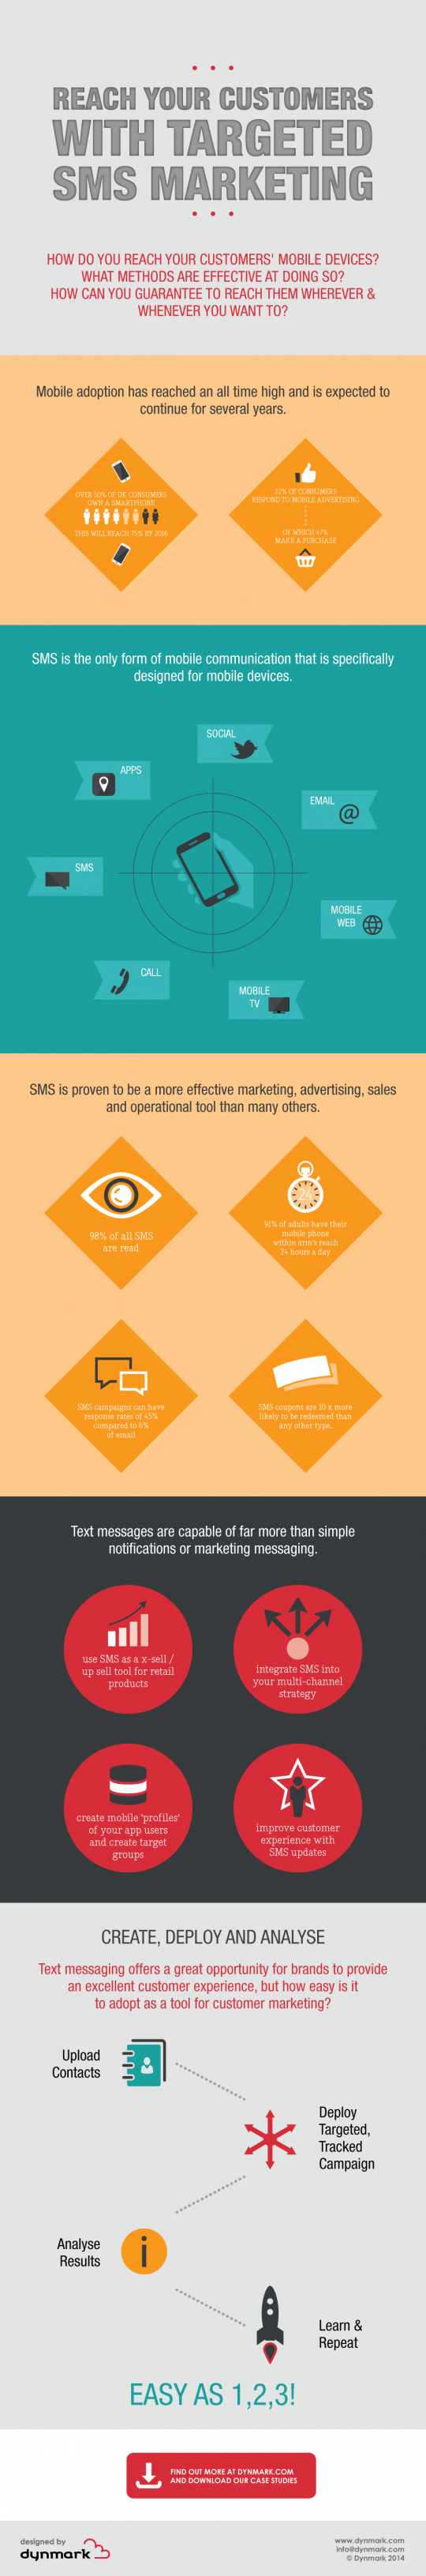 Reach your Customers with Targeted SMS Marketing